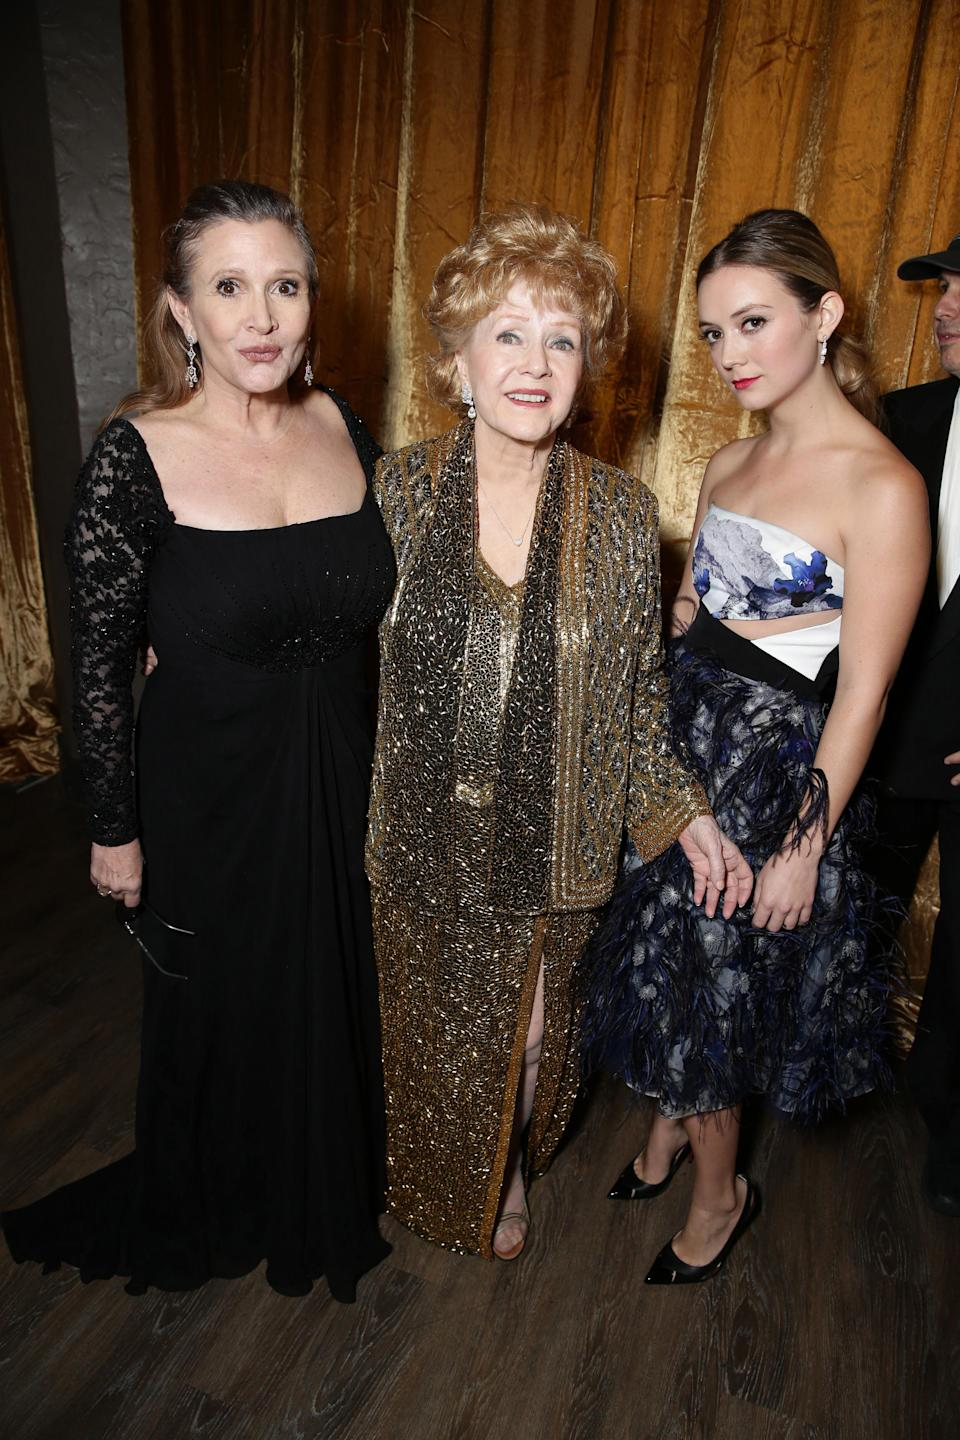 Carrie Fisher, Debbie Reynolds and Billie Catherine Lourd seen at 21st Annual SAG Awards Ceremony at the Shrine Auditorium on Sunday, January 25, 2015, in Los Angeles, CA. (Photo by Eric Charbonneau/Invision for People/AP Images)